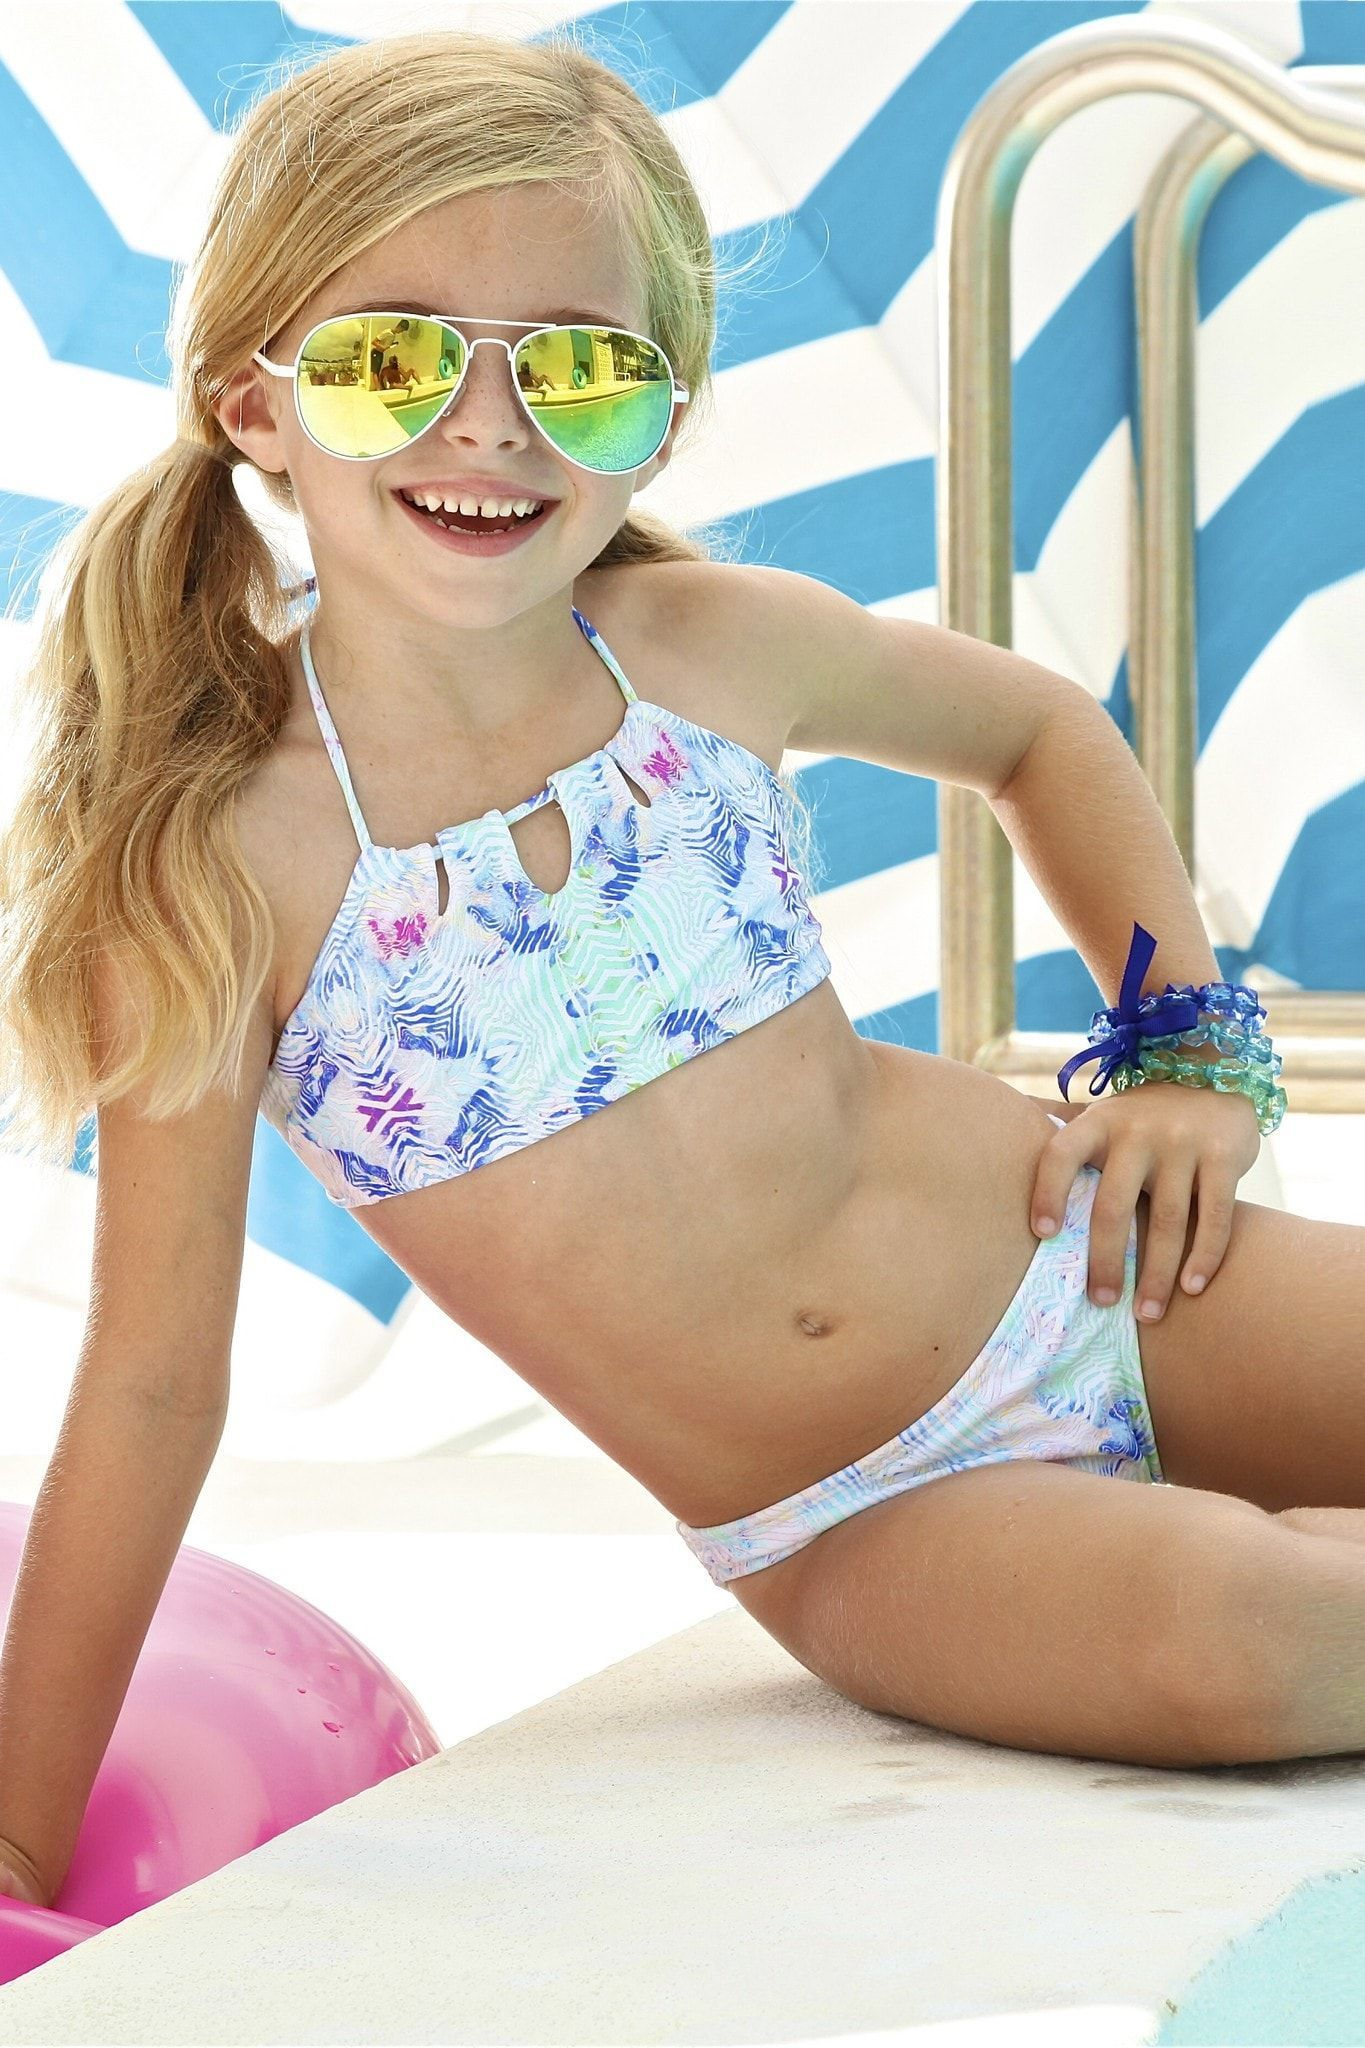 a55905dc2c It's time to style up your little girl in the latest trends. This Little  Peixoto Tamarin Bikini will definitely be on her wish list once she sees it.